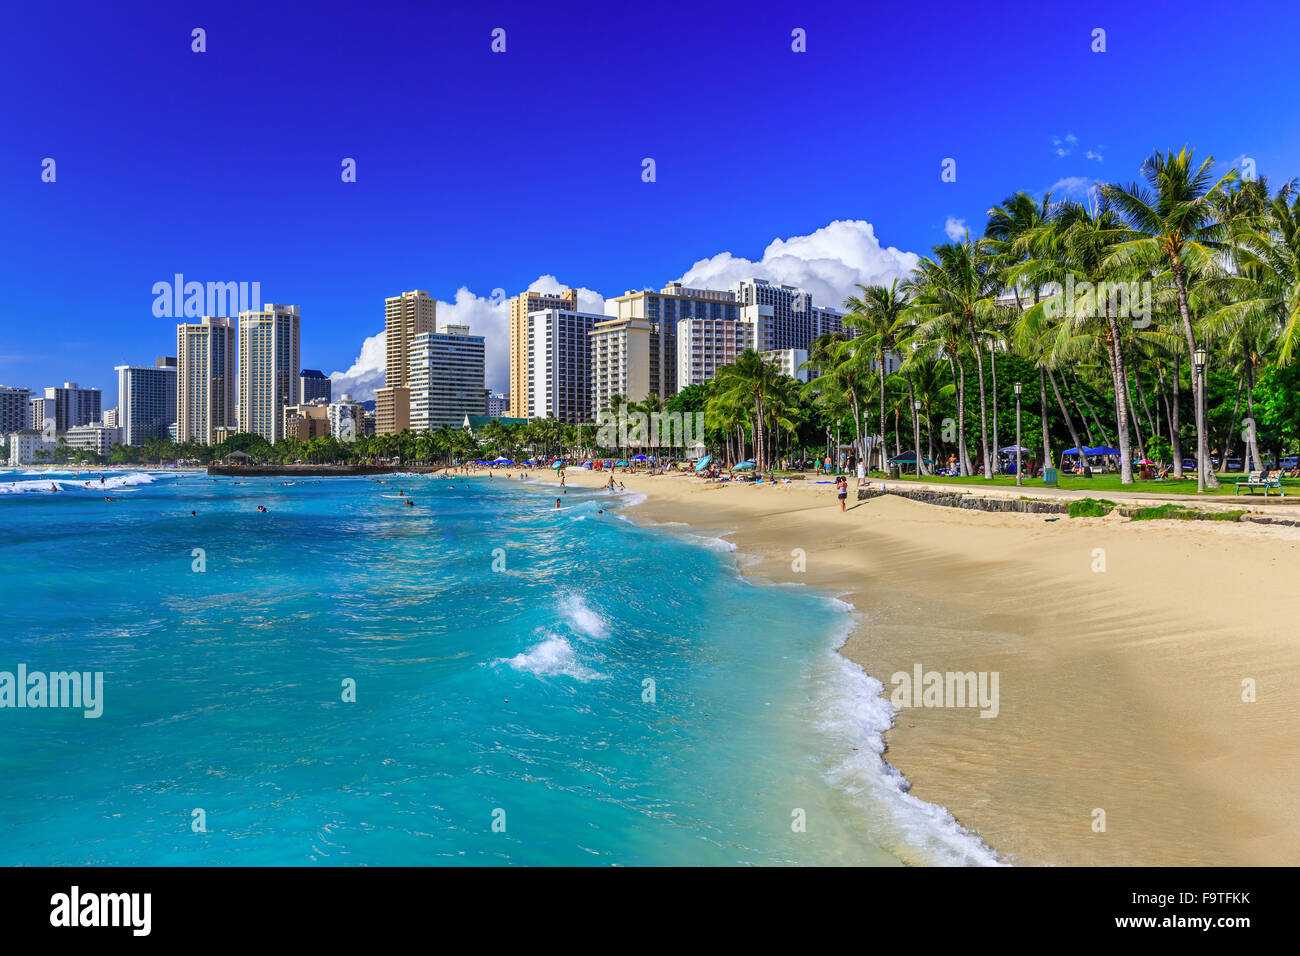 Honolulu, Hawaii. Waikiki beach and Honolulu's skyline. Stock Photo